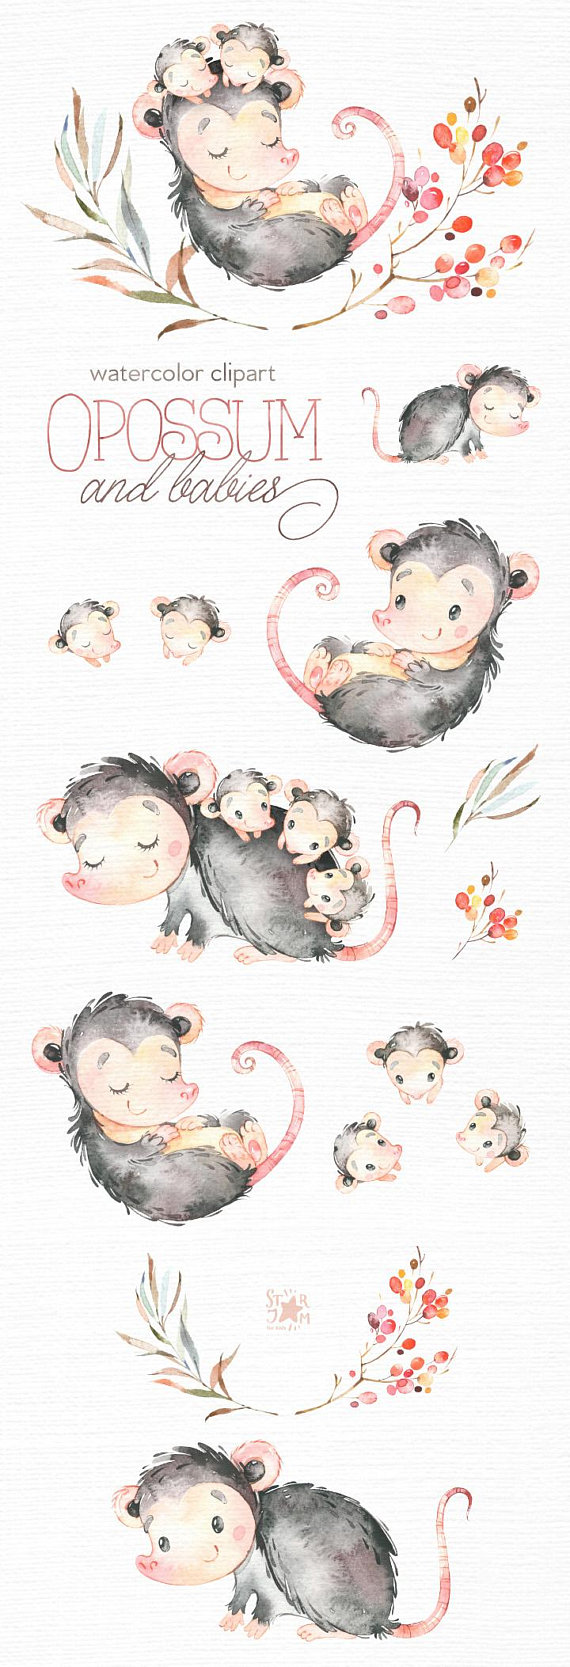 Opossum And Babies. Watercolor animals clip art, wild, native.